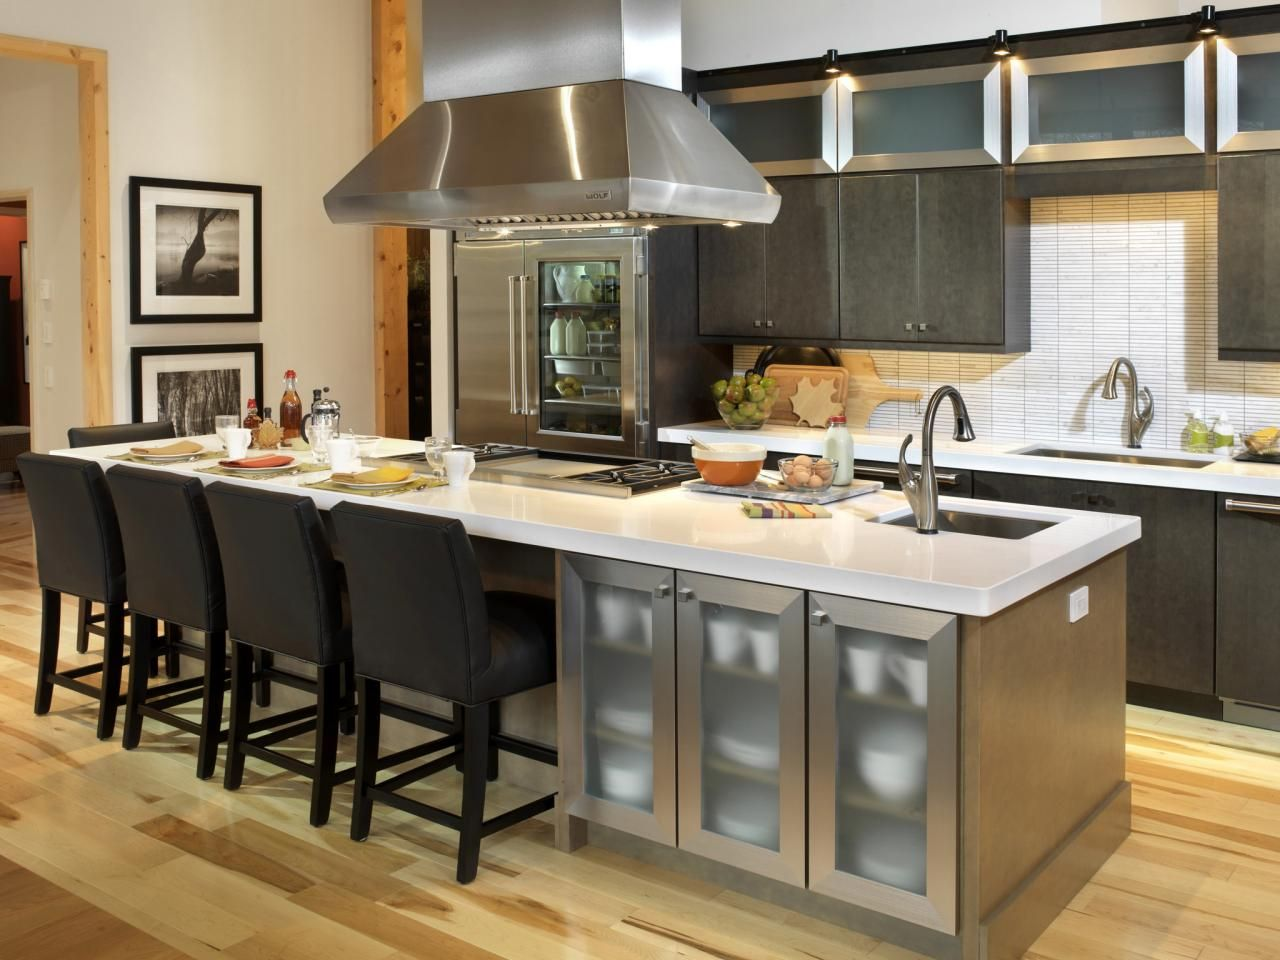 Kitchen Islands With Seating Pictures Ideas From Hgtv Kitchen Island With Sink Kitchen Island With Sink And Dishwasher Kitchen Island Table